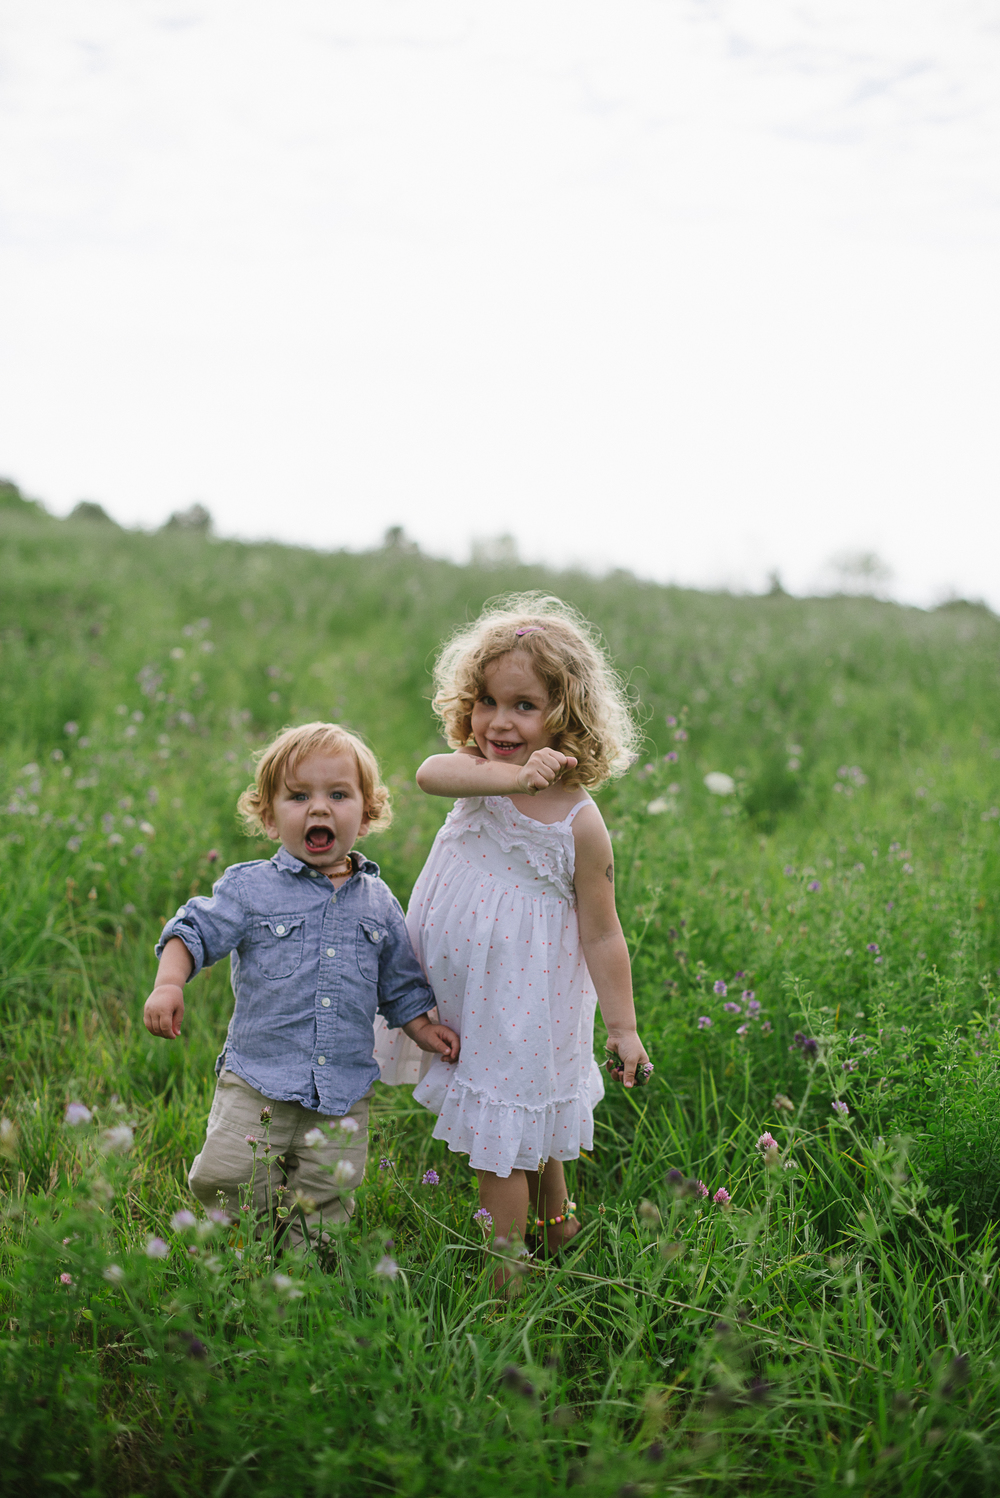 wildflowers-kids-35.jpg